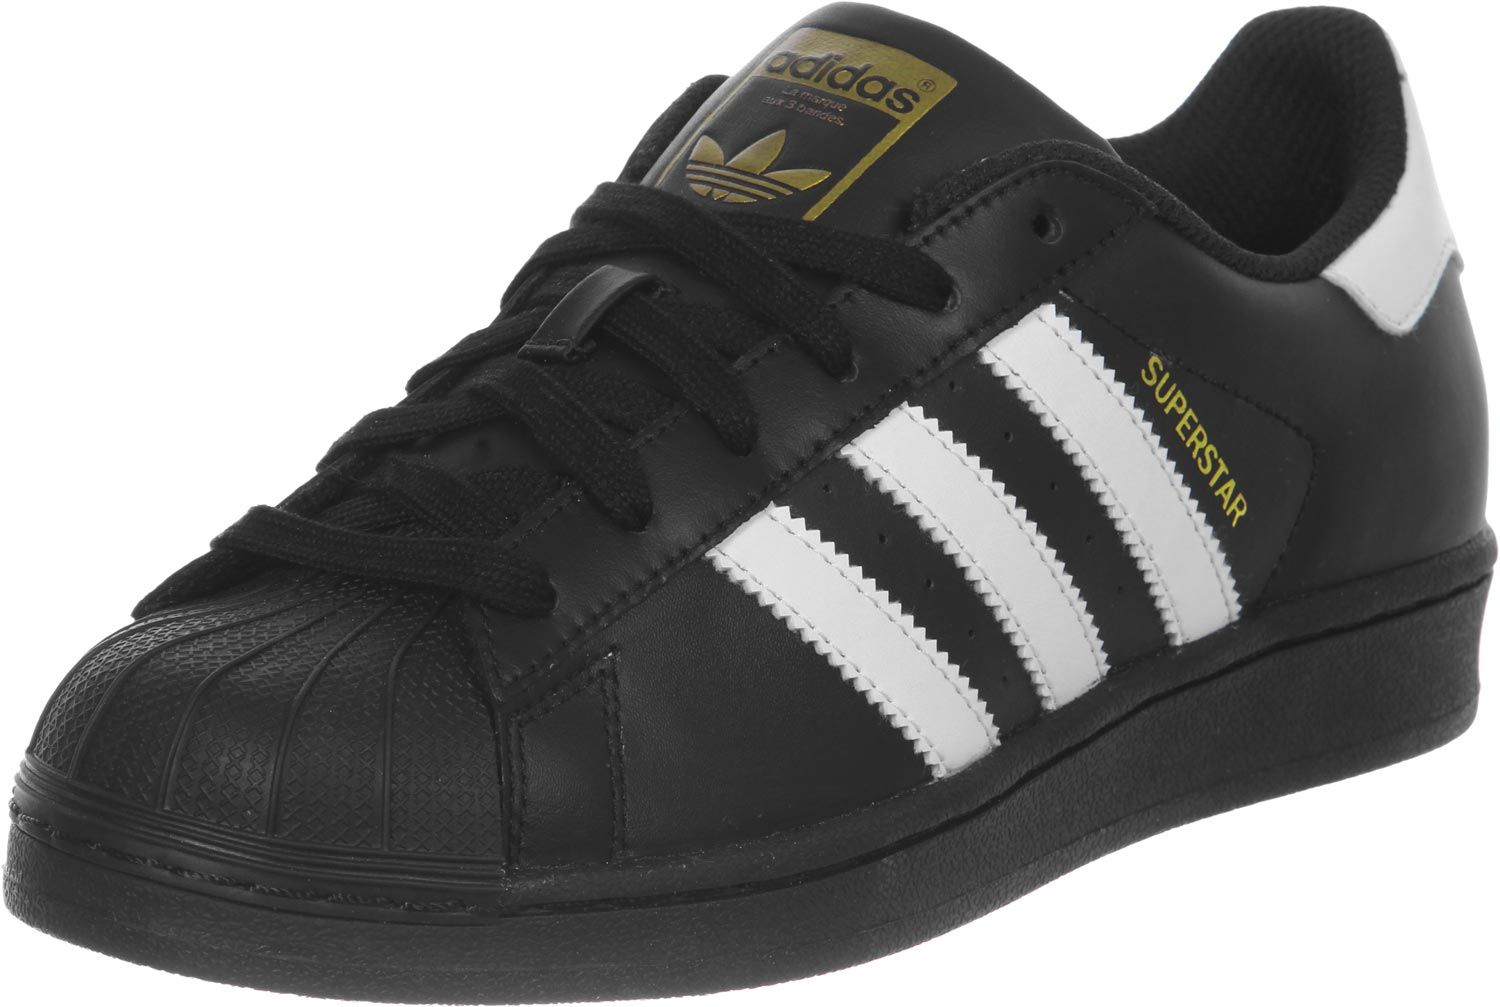 751bcc24a83 Shoes Zwartsneakersamp; Superstar Adidas Wit Edh9iw2 Pinterest Uq8xvwI